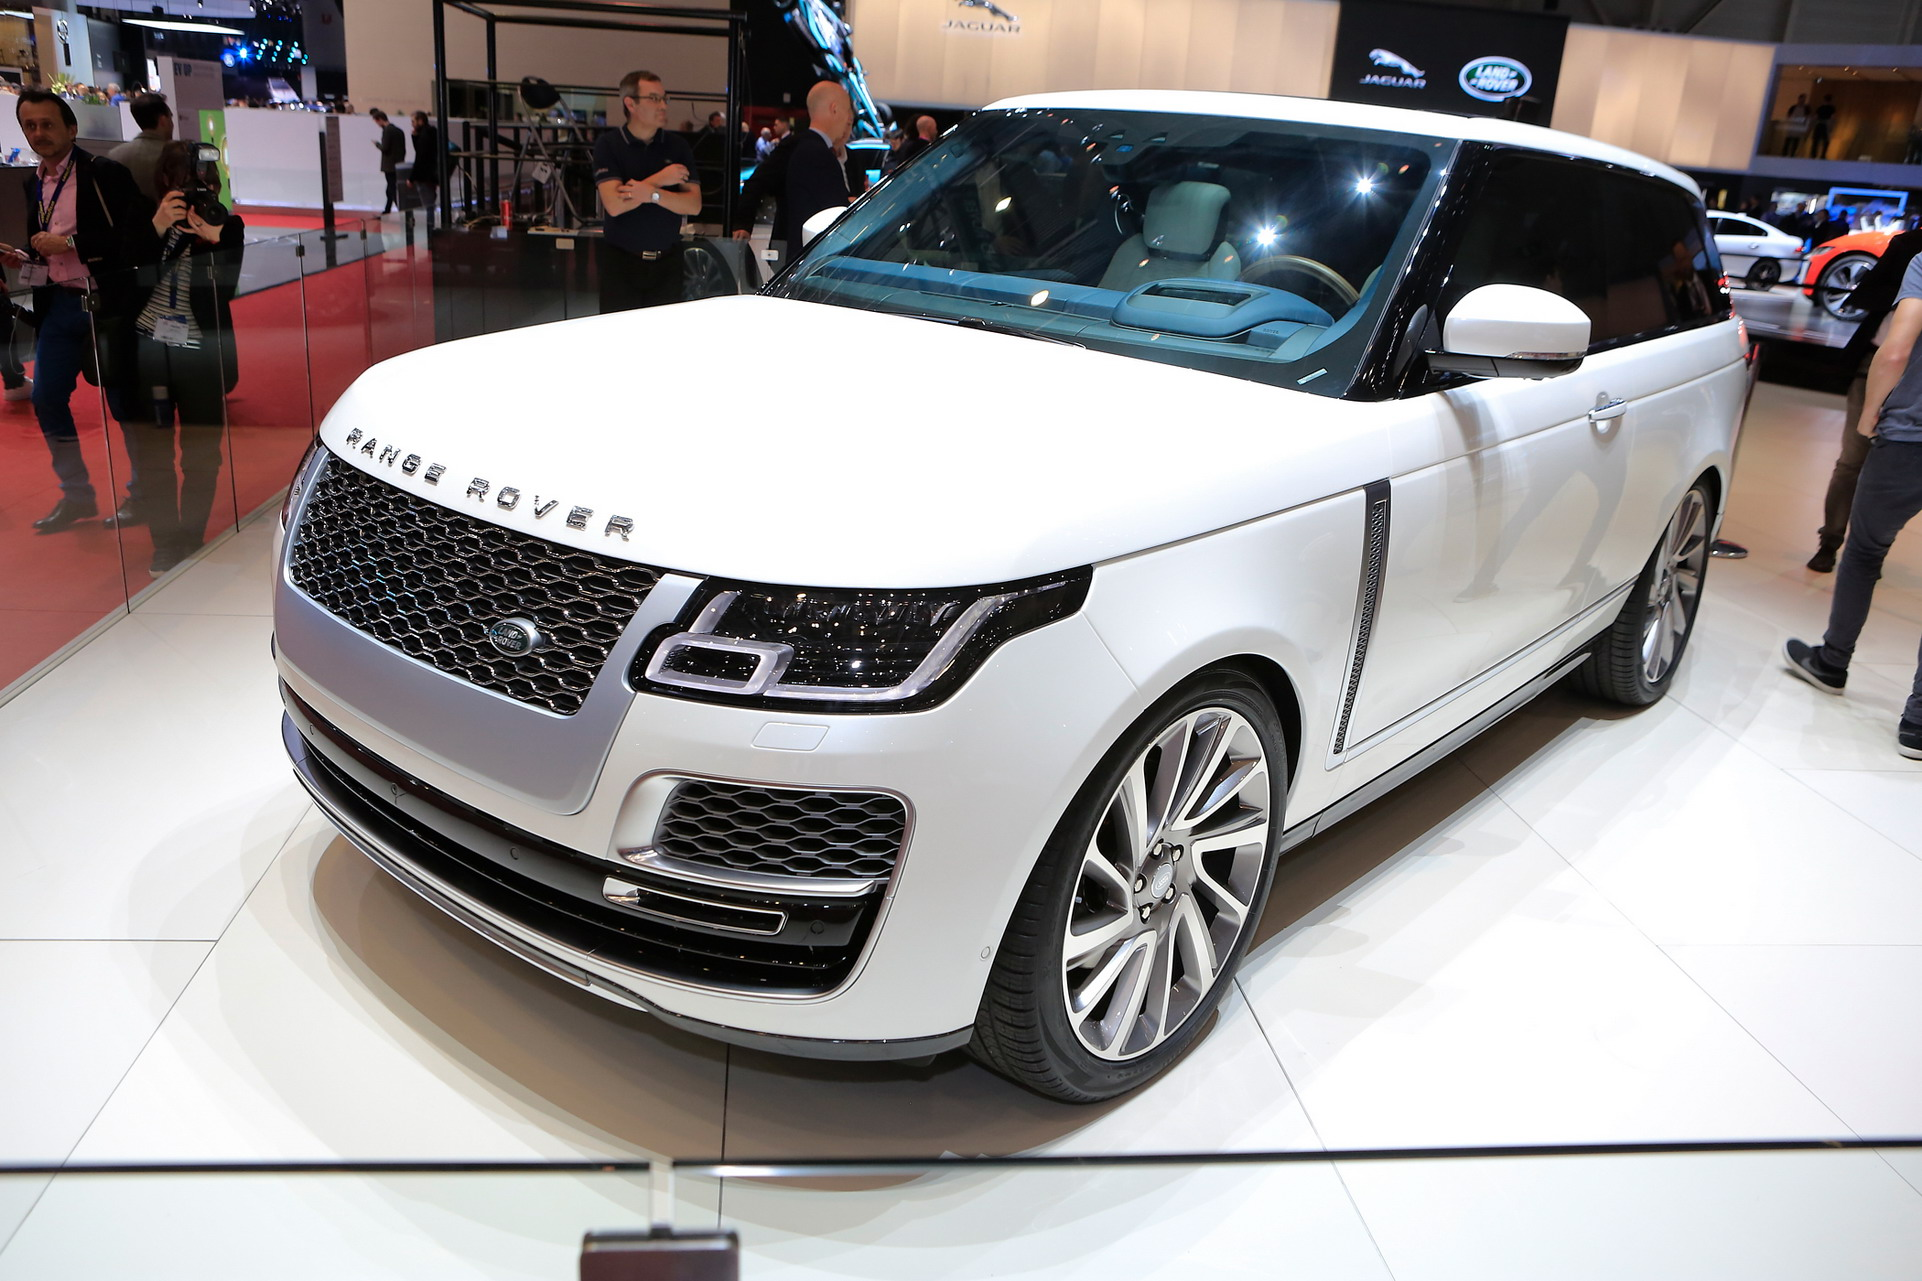 ingin coupe berwujud suv silahkan pinang range rover sv coupe autonetmagz. Black Bedroom Furniture Sets. Home Design Ideas